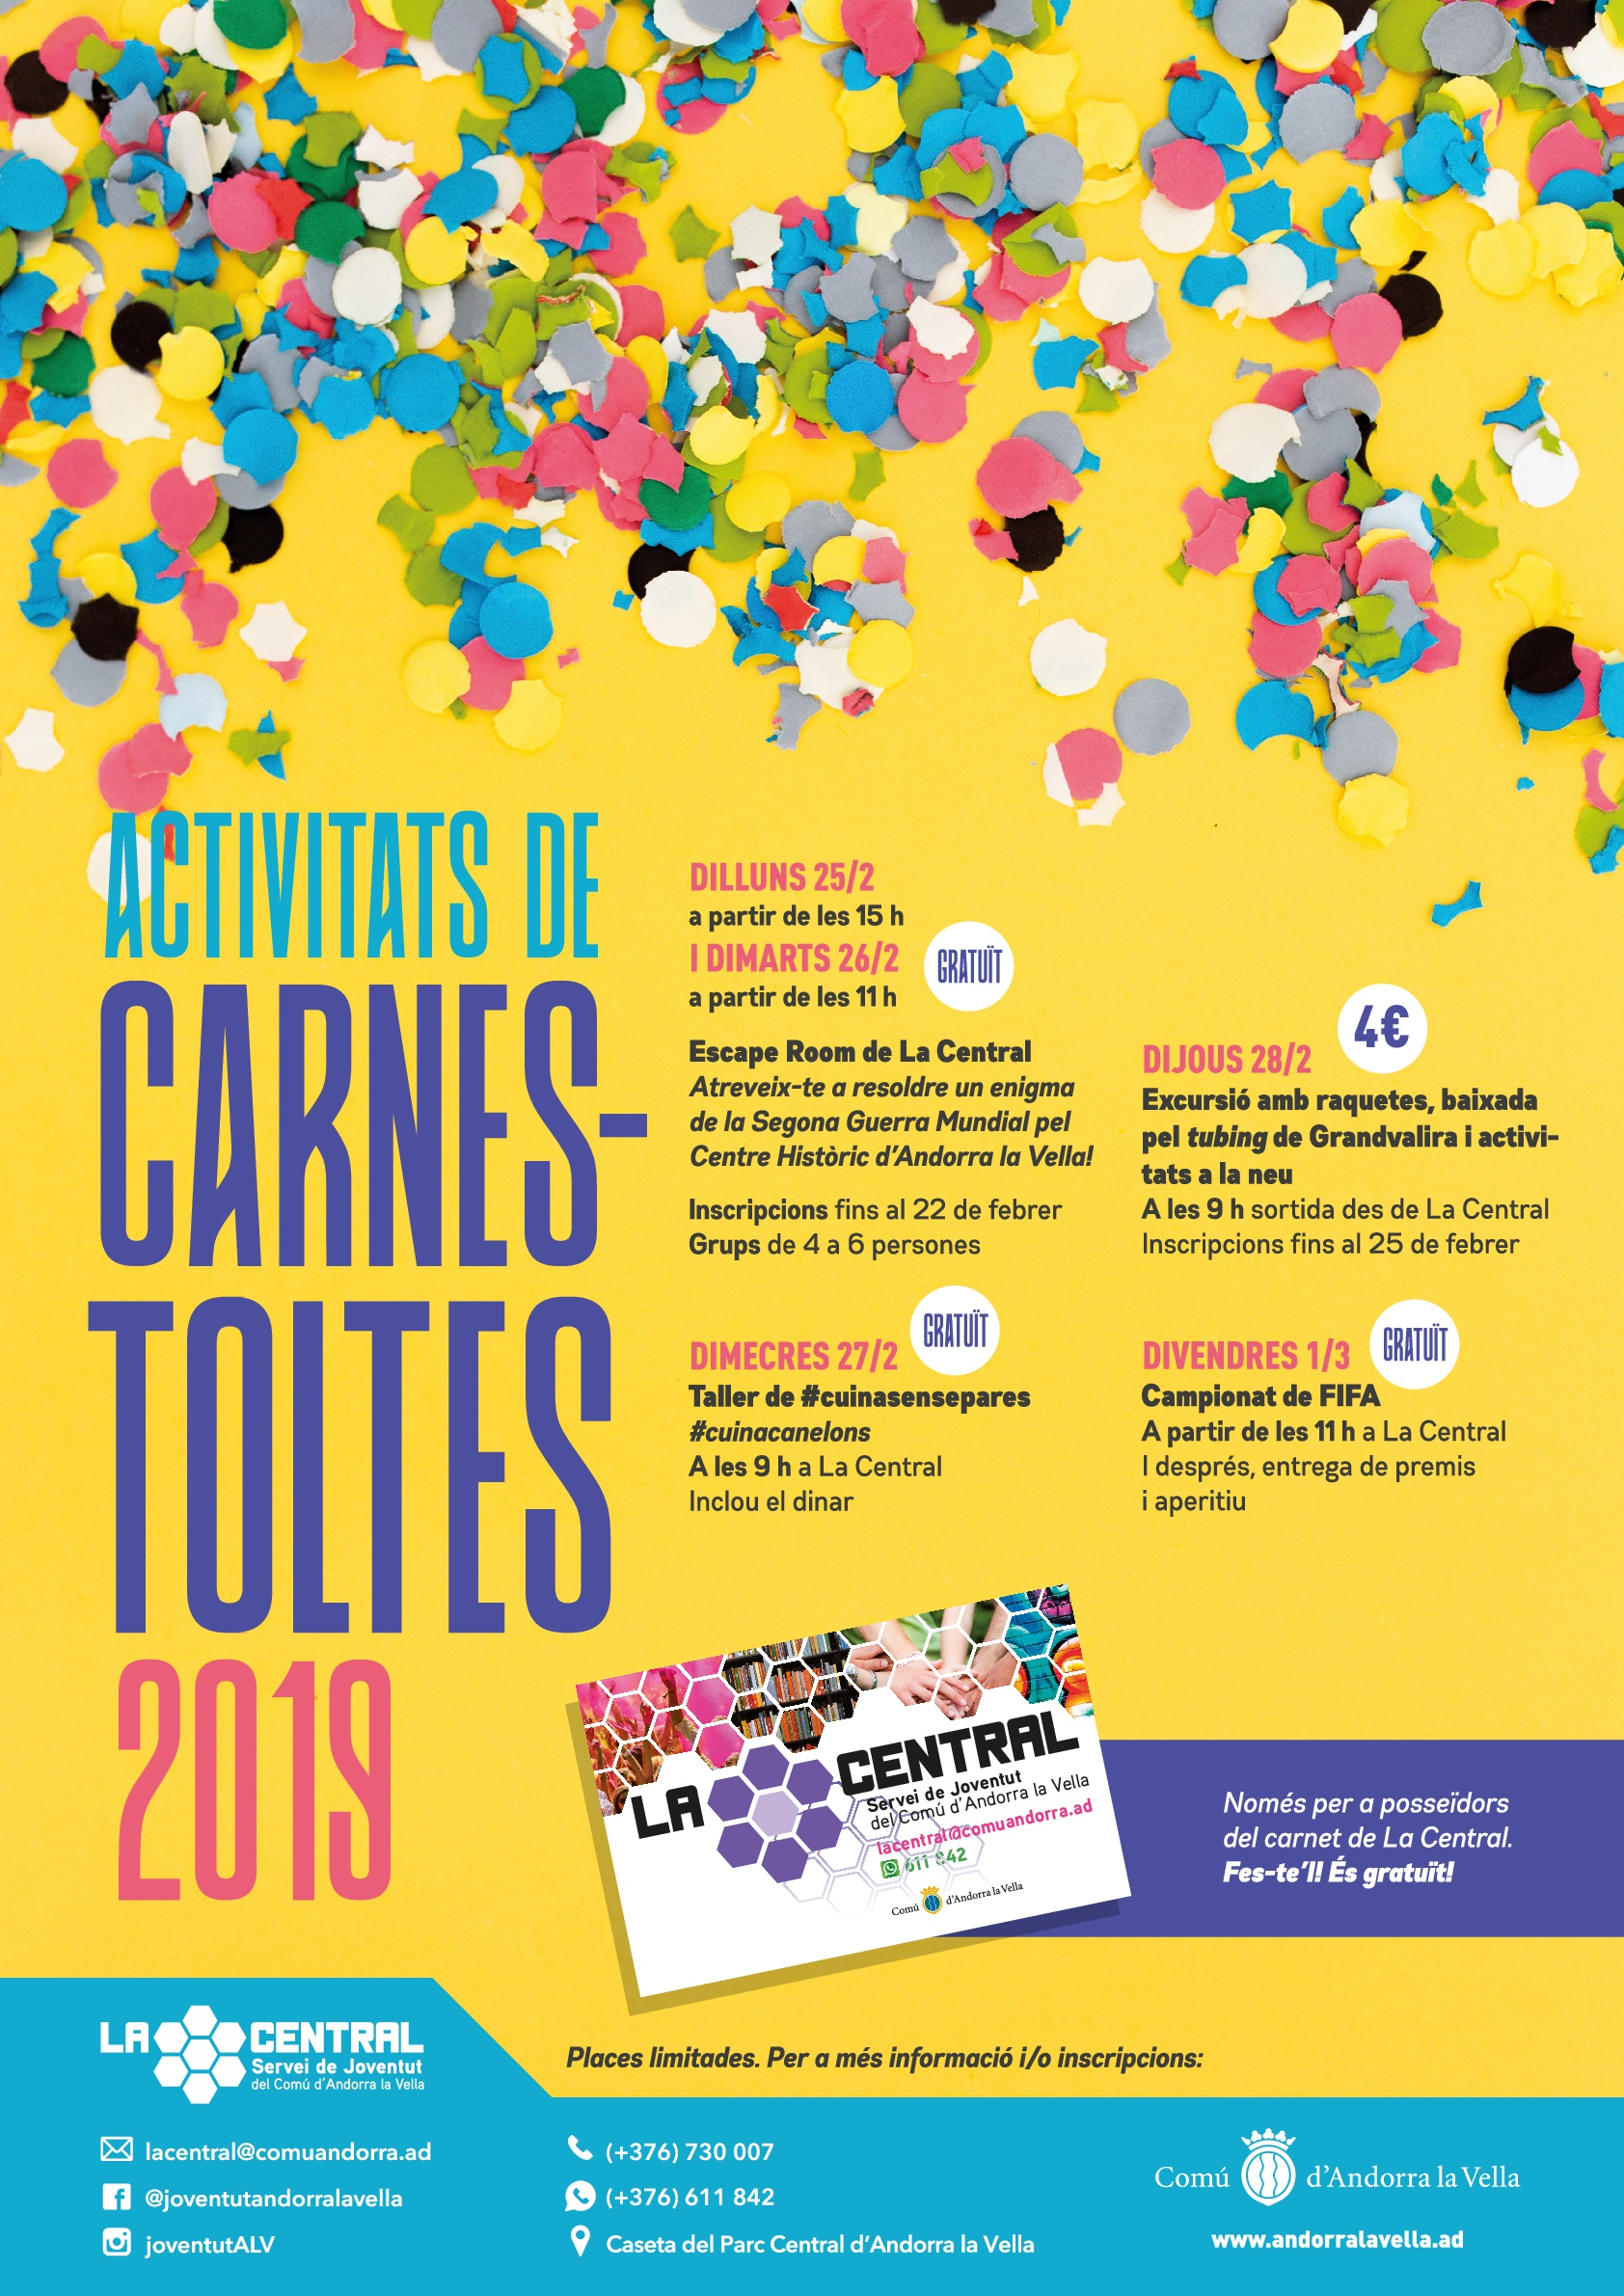 Cartell carnaval La Central 20019